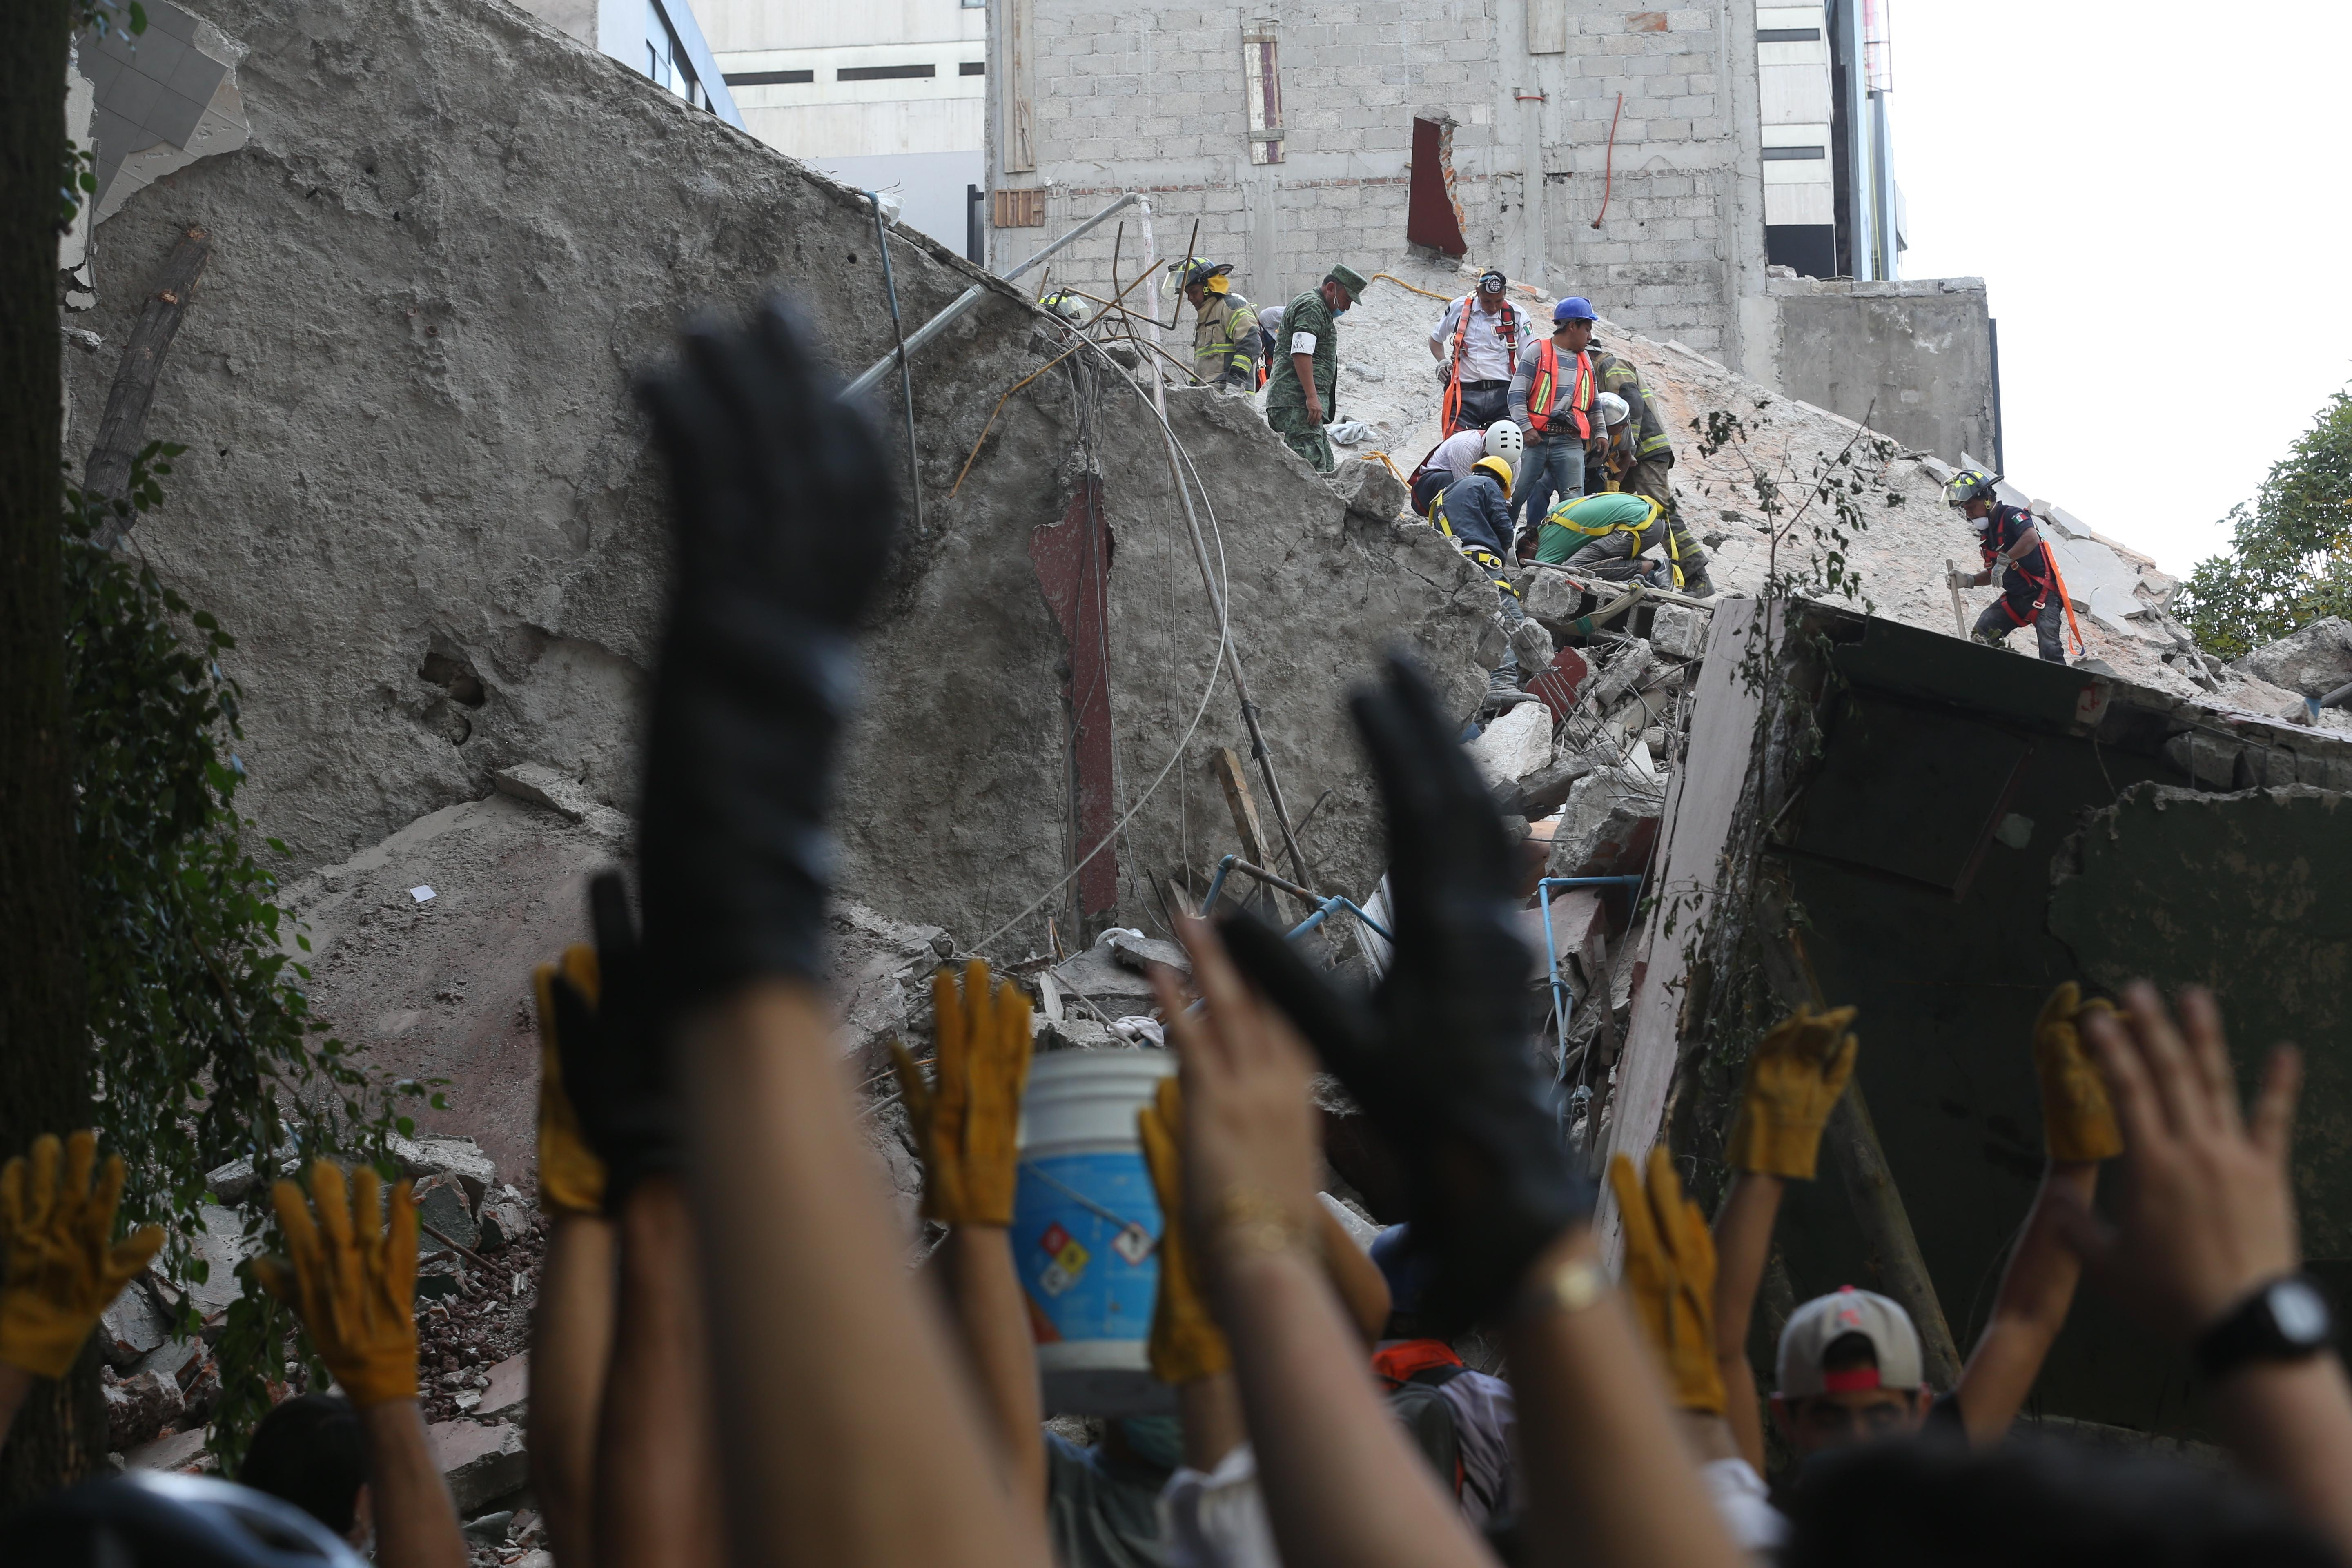 First responders raise their hands asking for silence as they work on removing the rubble of a collapsed building looking for survivors trapped underneath, after a 7.1 earthquake in Mexico City, Tuesday, Sept. 19, 2017.  The earthquake stunned central Mexico, killing more than 100 people as buildings collapsed in plumes of dust.  (AP Photo/Gustavo Martinez Contreras)